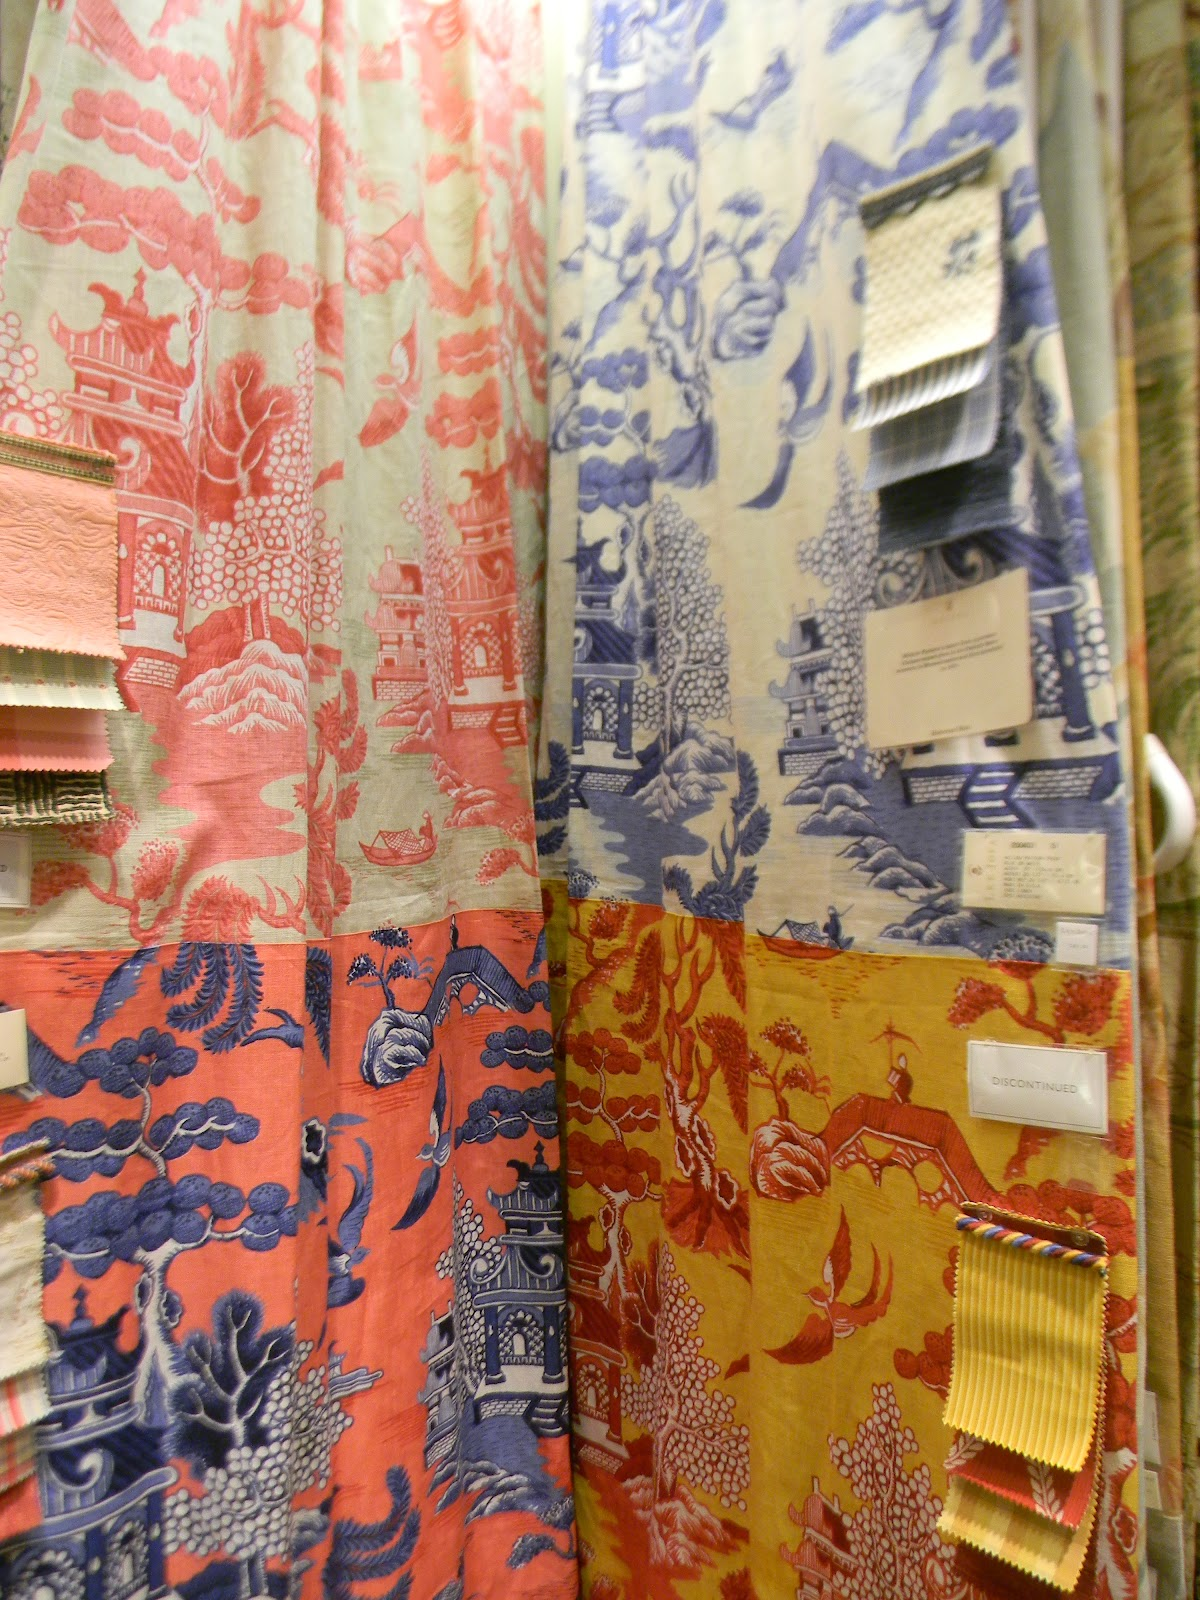 And Check Out These Fabric Choices The Pink White Is Sooooo Pretty Design Taken From A Chinese Porcelain Export Plate In Peabody Es